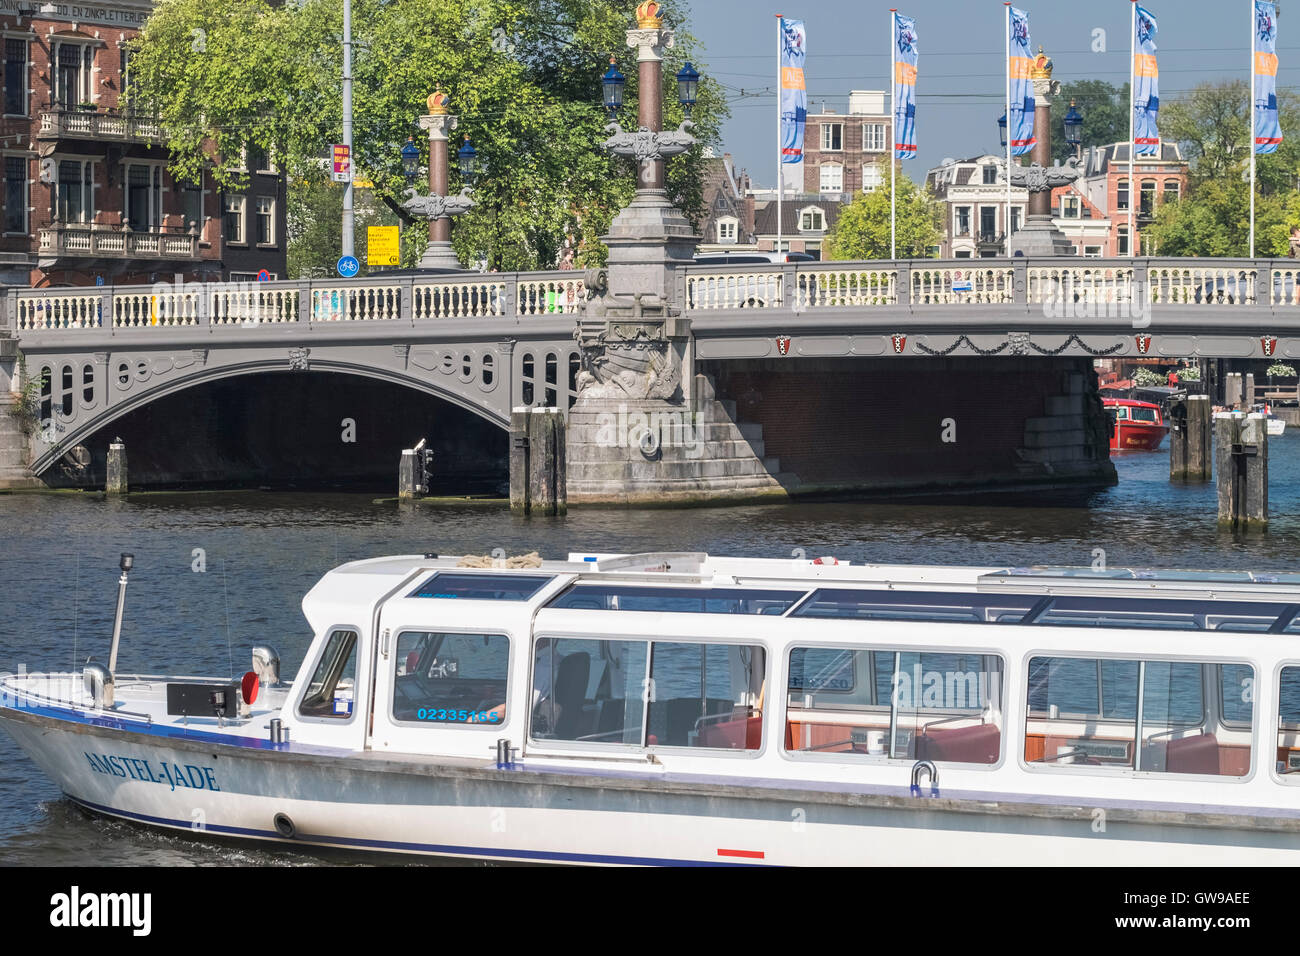 The Amstel Jade lesiure boat on the Amstel river at Blauwbrug bridge, Amsterdam, Netherlands. - Stock Image